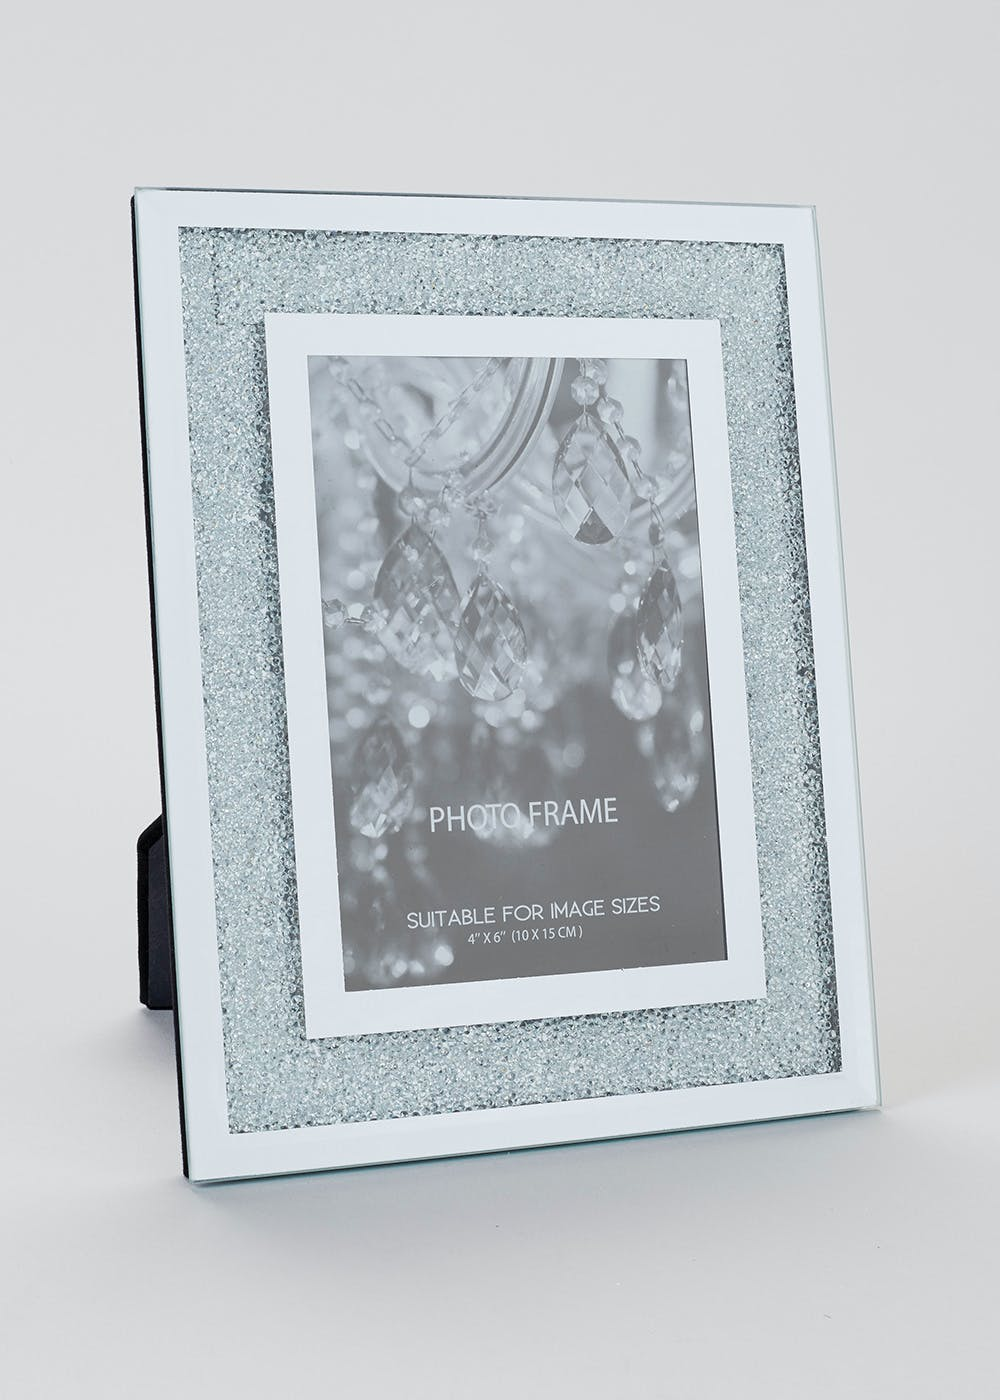 Photo frames picture frames mirrors matalan bling mirrored glass photo frame 24cm x 19cm jeuxipadfo Choice Image